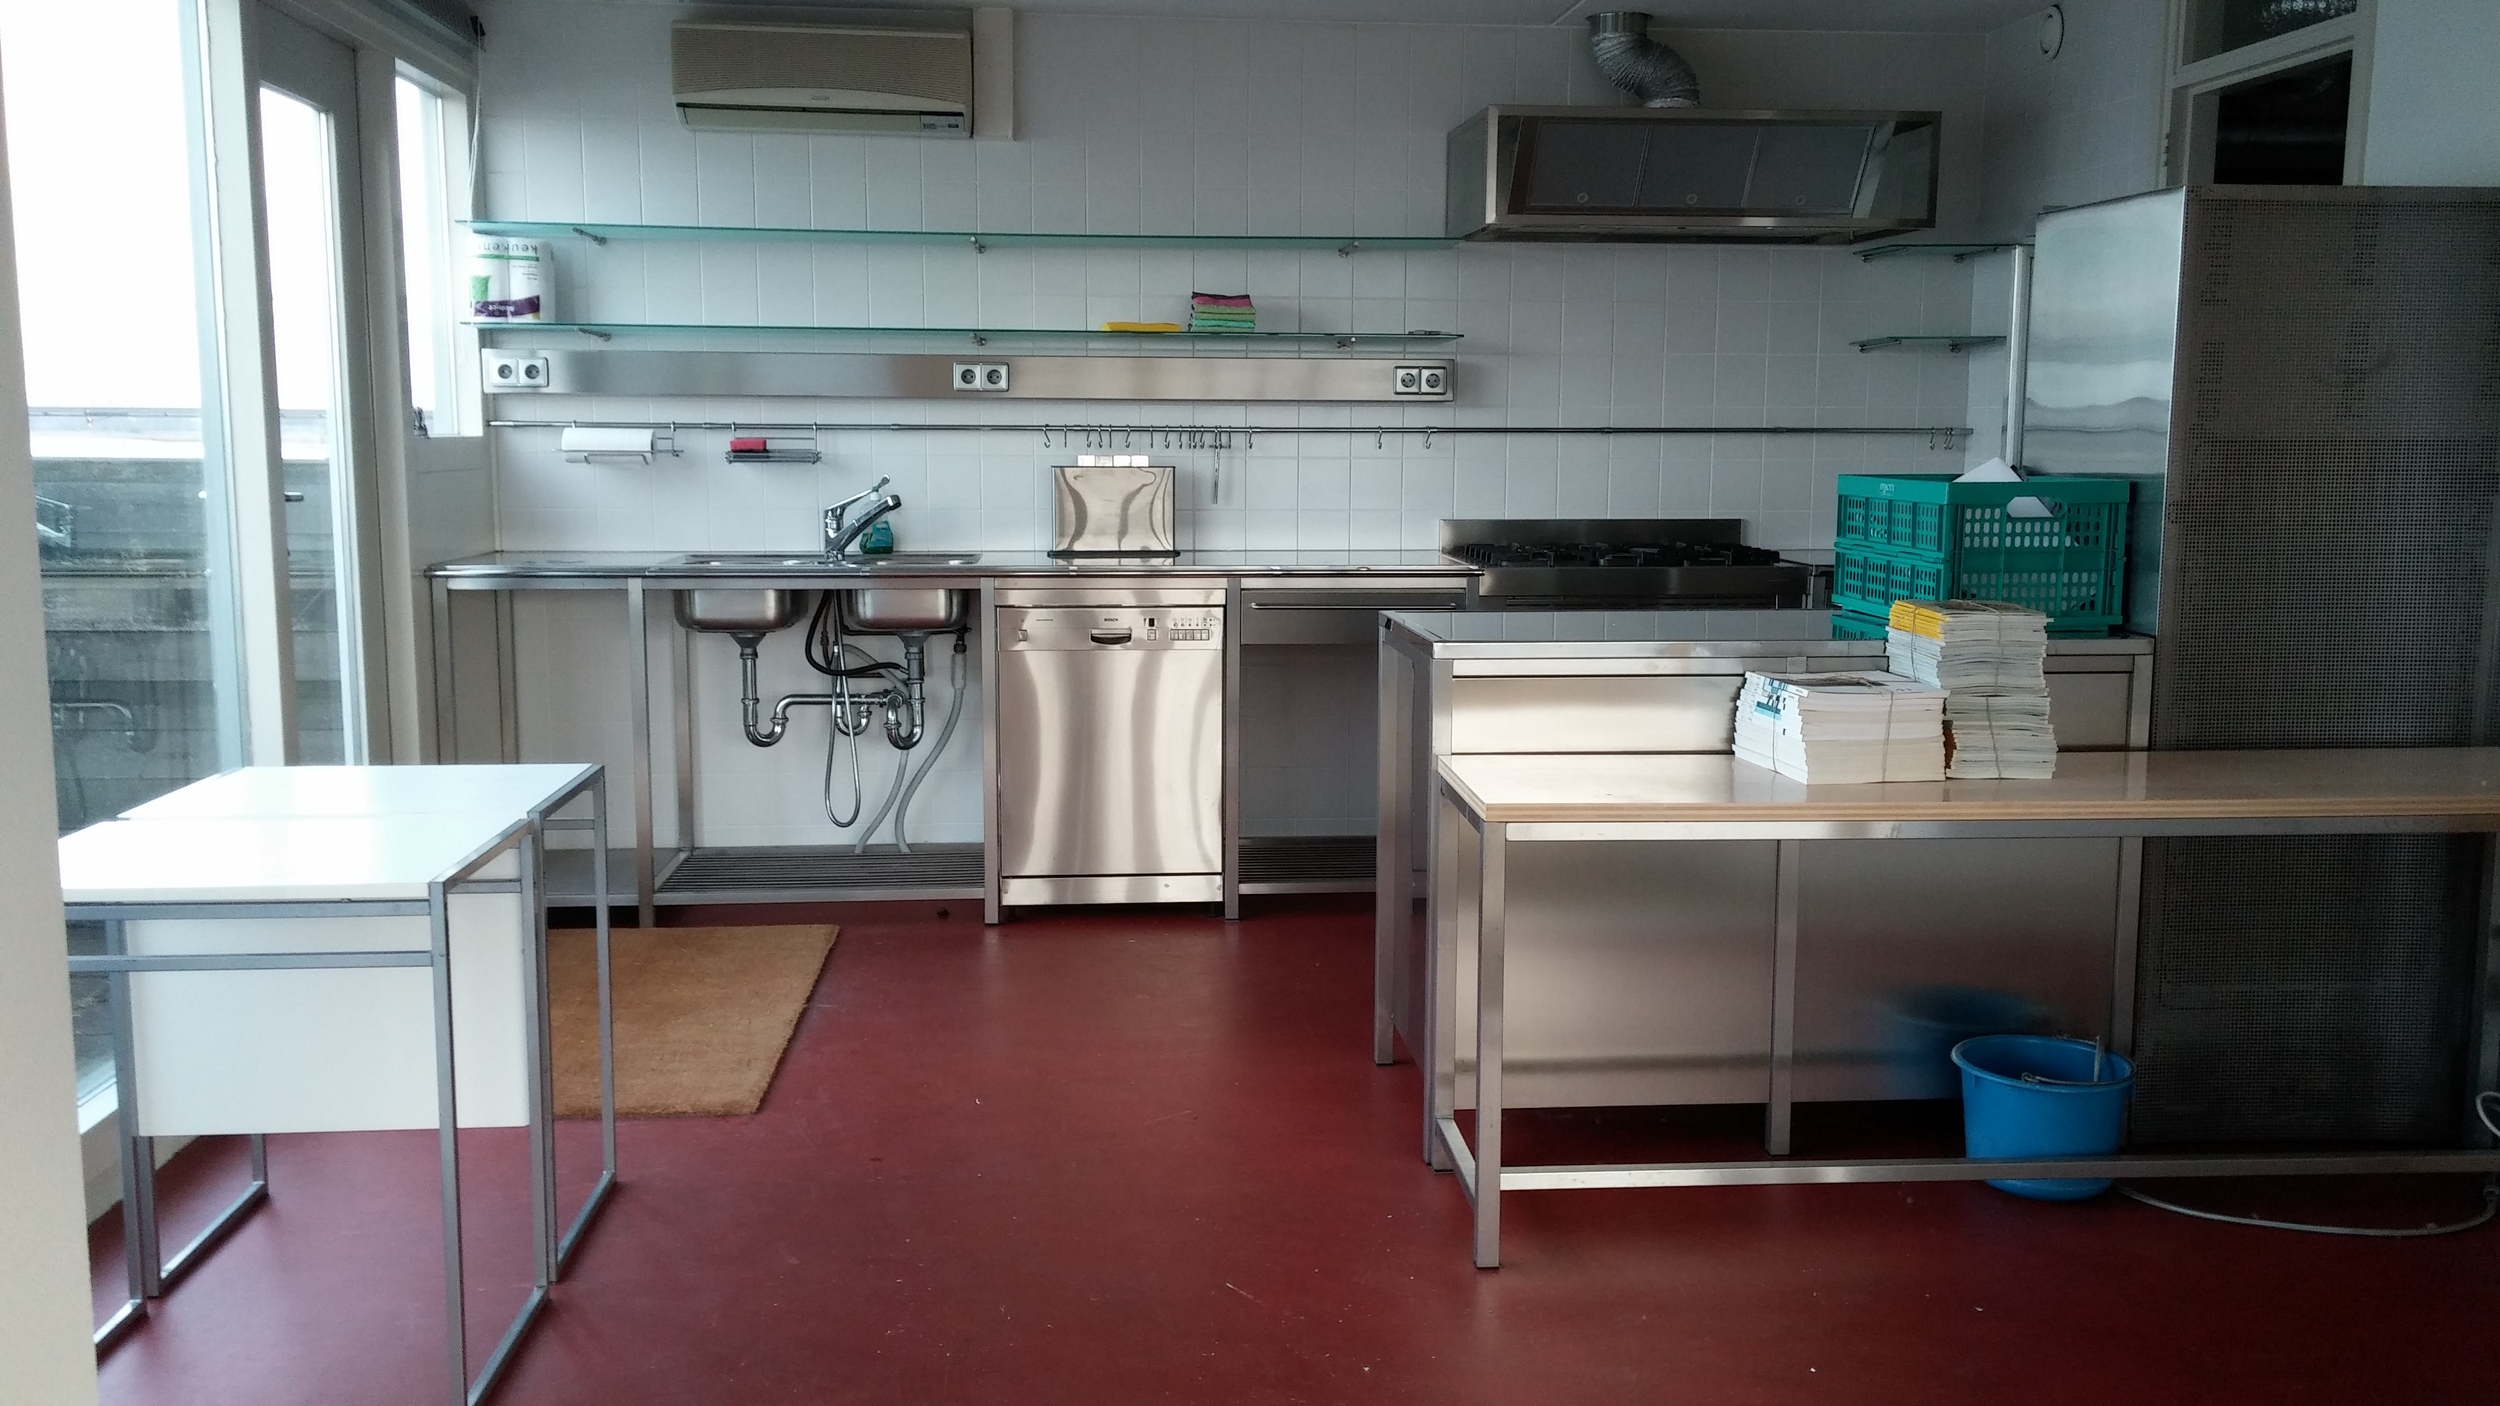 Kitchen in the apartment I'll be moving to. It has an oven and a dishwasher!